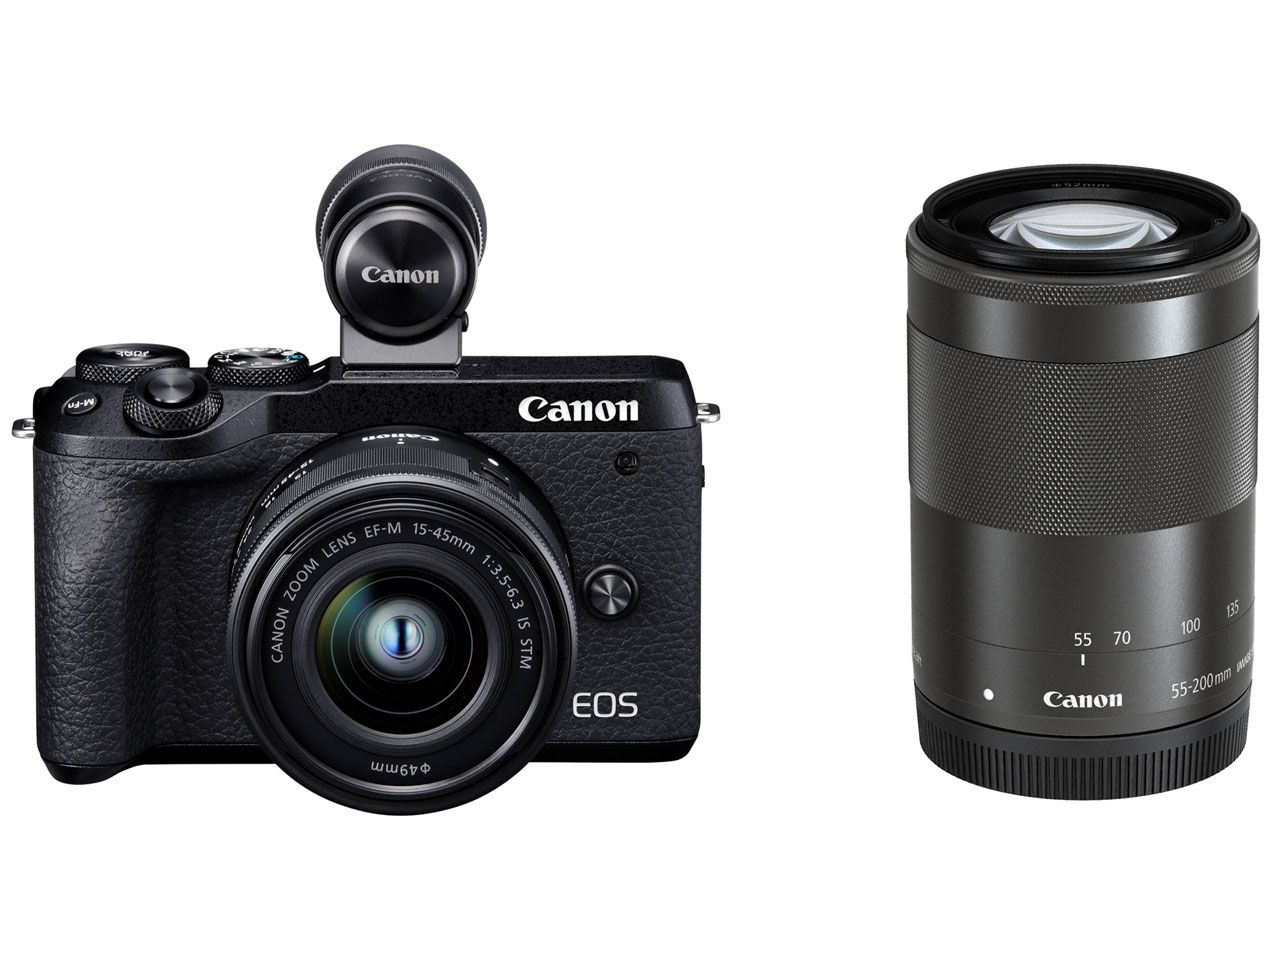 Canon EOS M6 Mark II ダブルズームEVFキット [ブラック]【お取り寄せ商品(3週間~4週間程度での入荷、発送)】